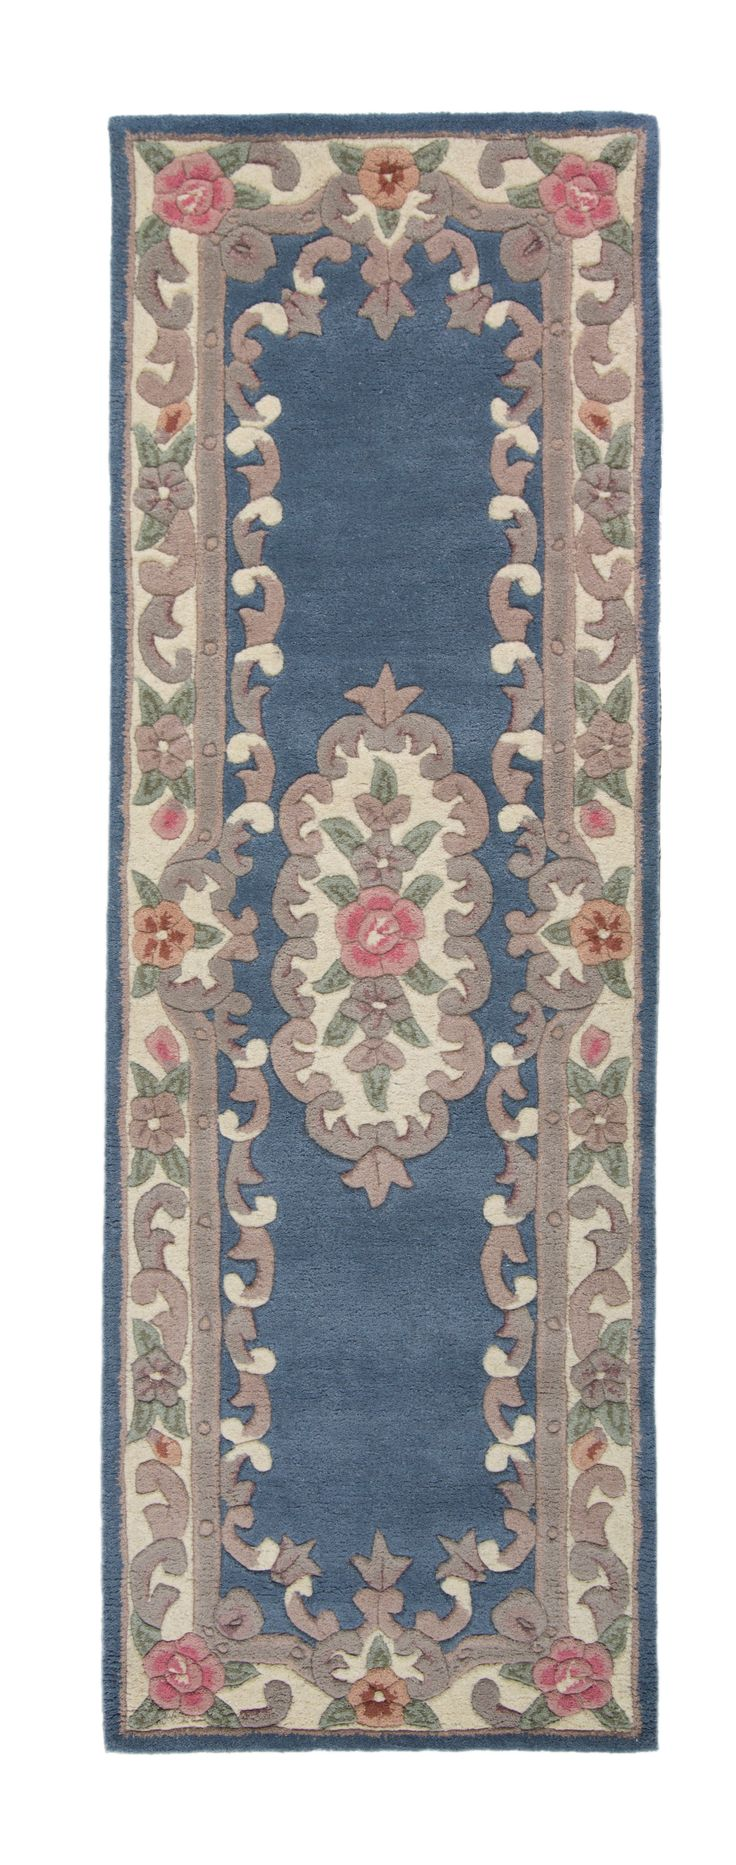 cool Blue Traditional Wool Hall Runner Rug Imperial 67x210 Check more at http://hasiera.co.uk/s/rugs/product/blue-traditional-wool-hall-runner-rug-imperial-67x210/